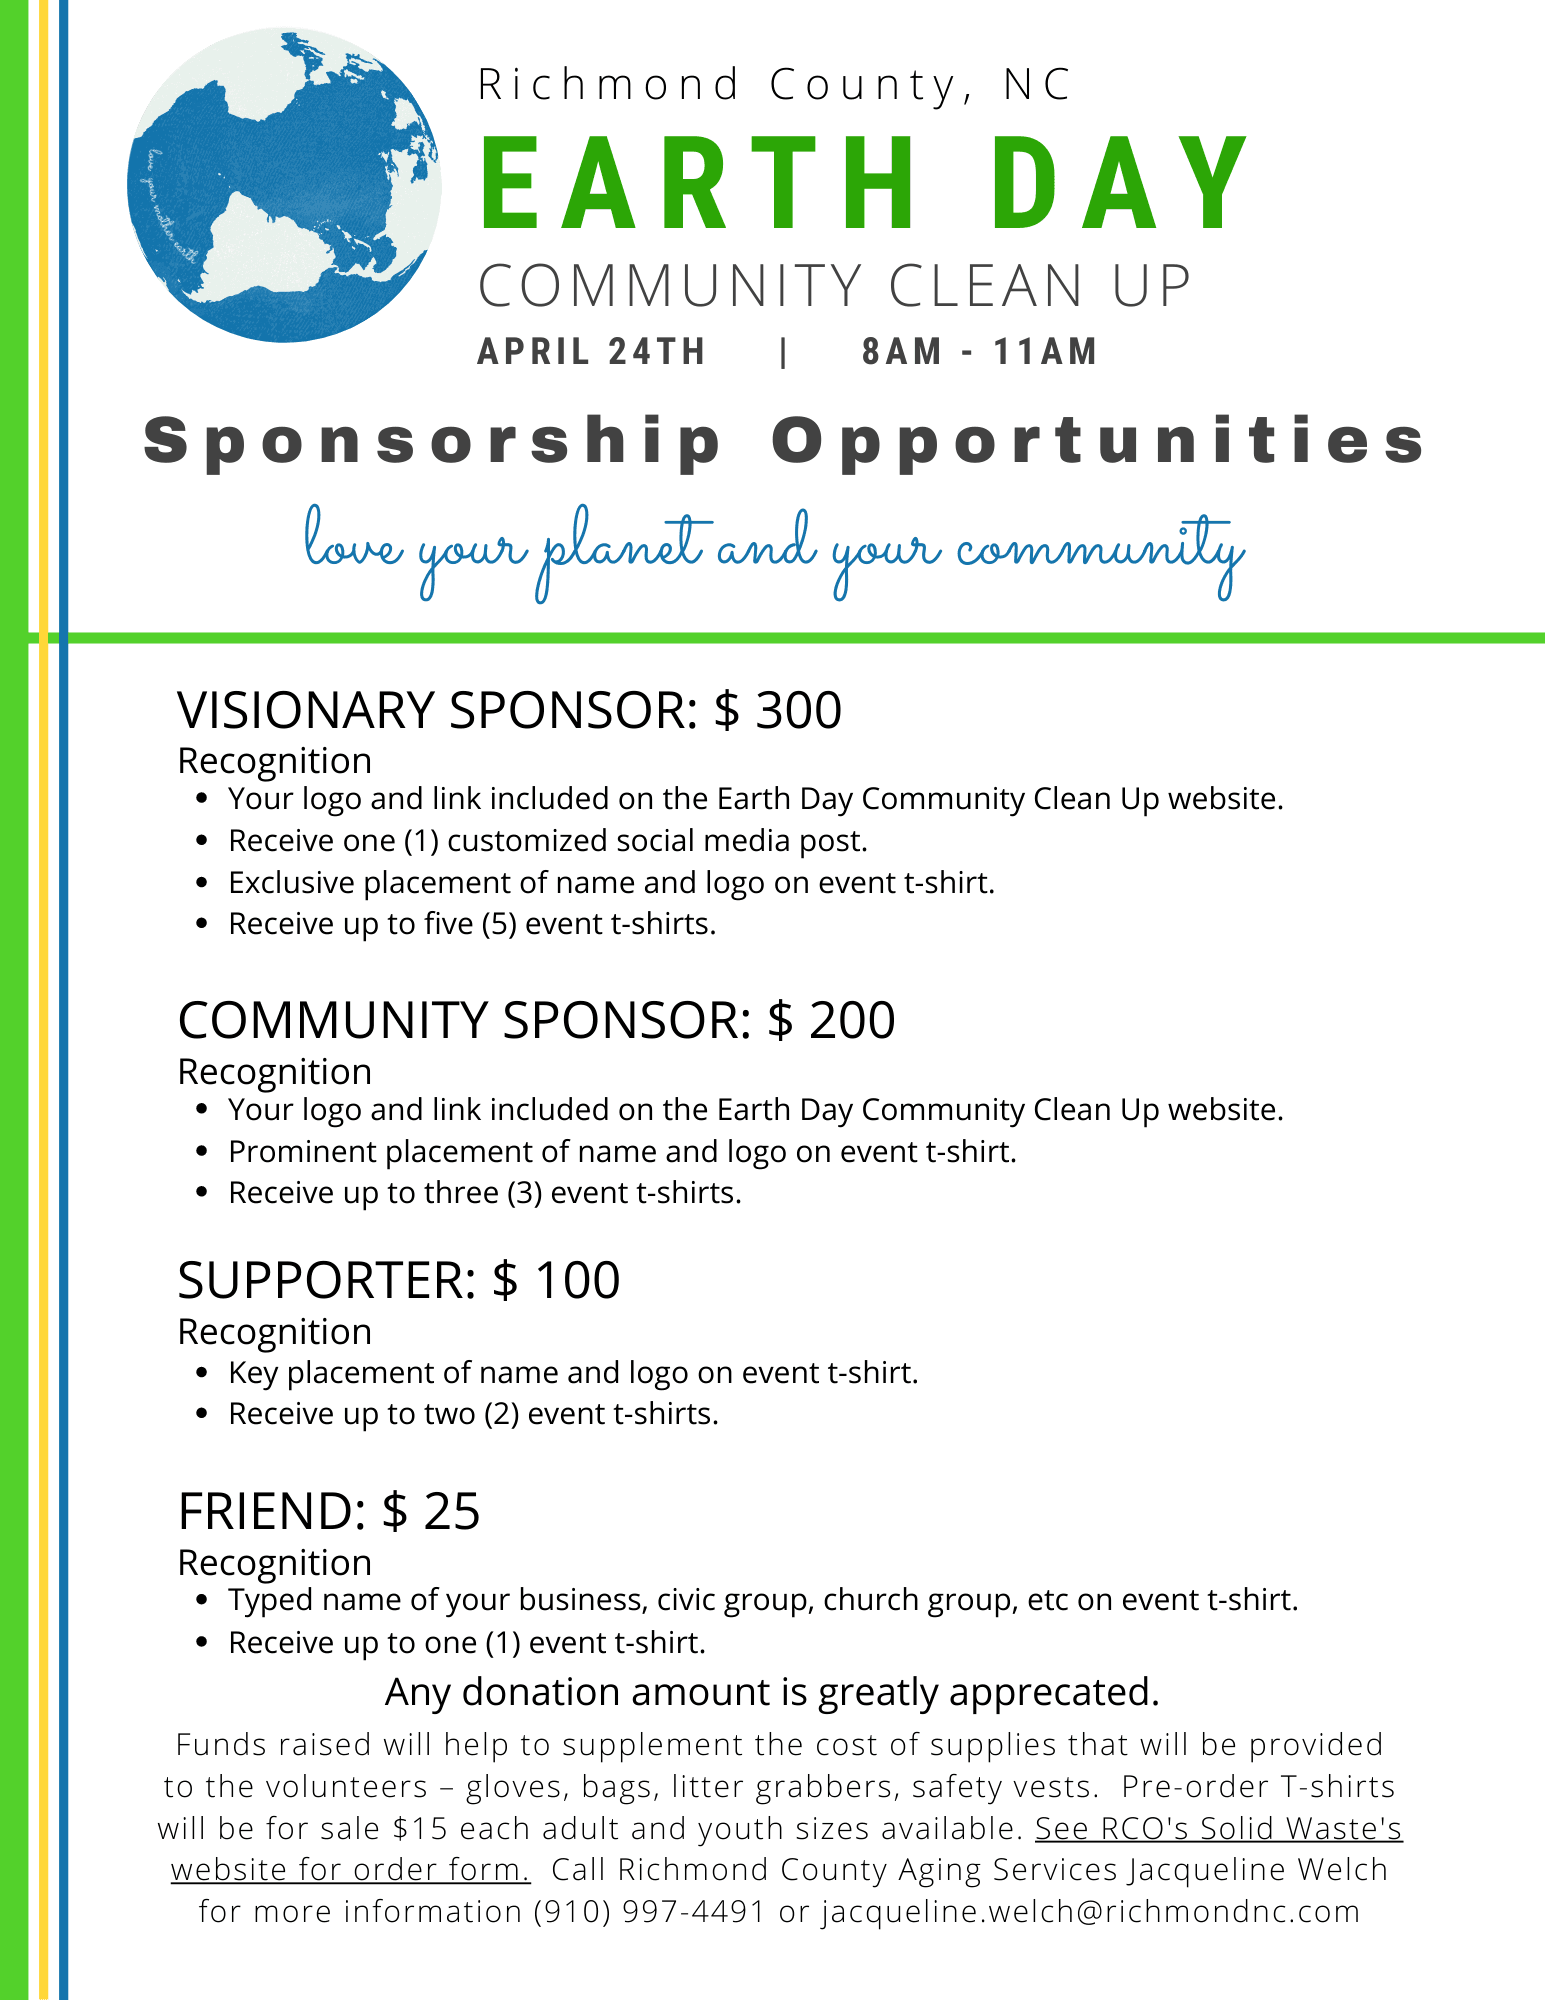 RCO RCAS - Earth Day 2021 Sponsorships